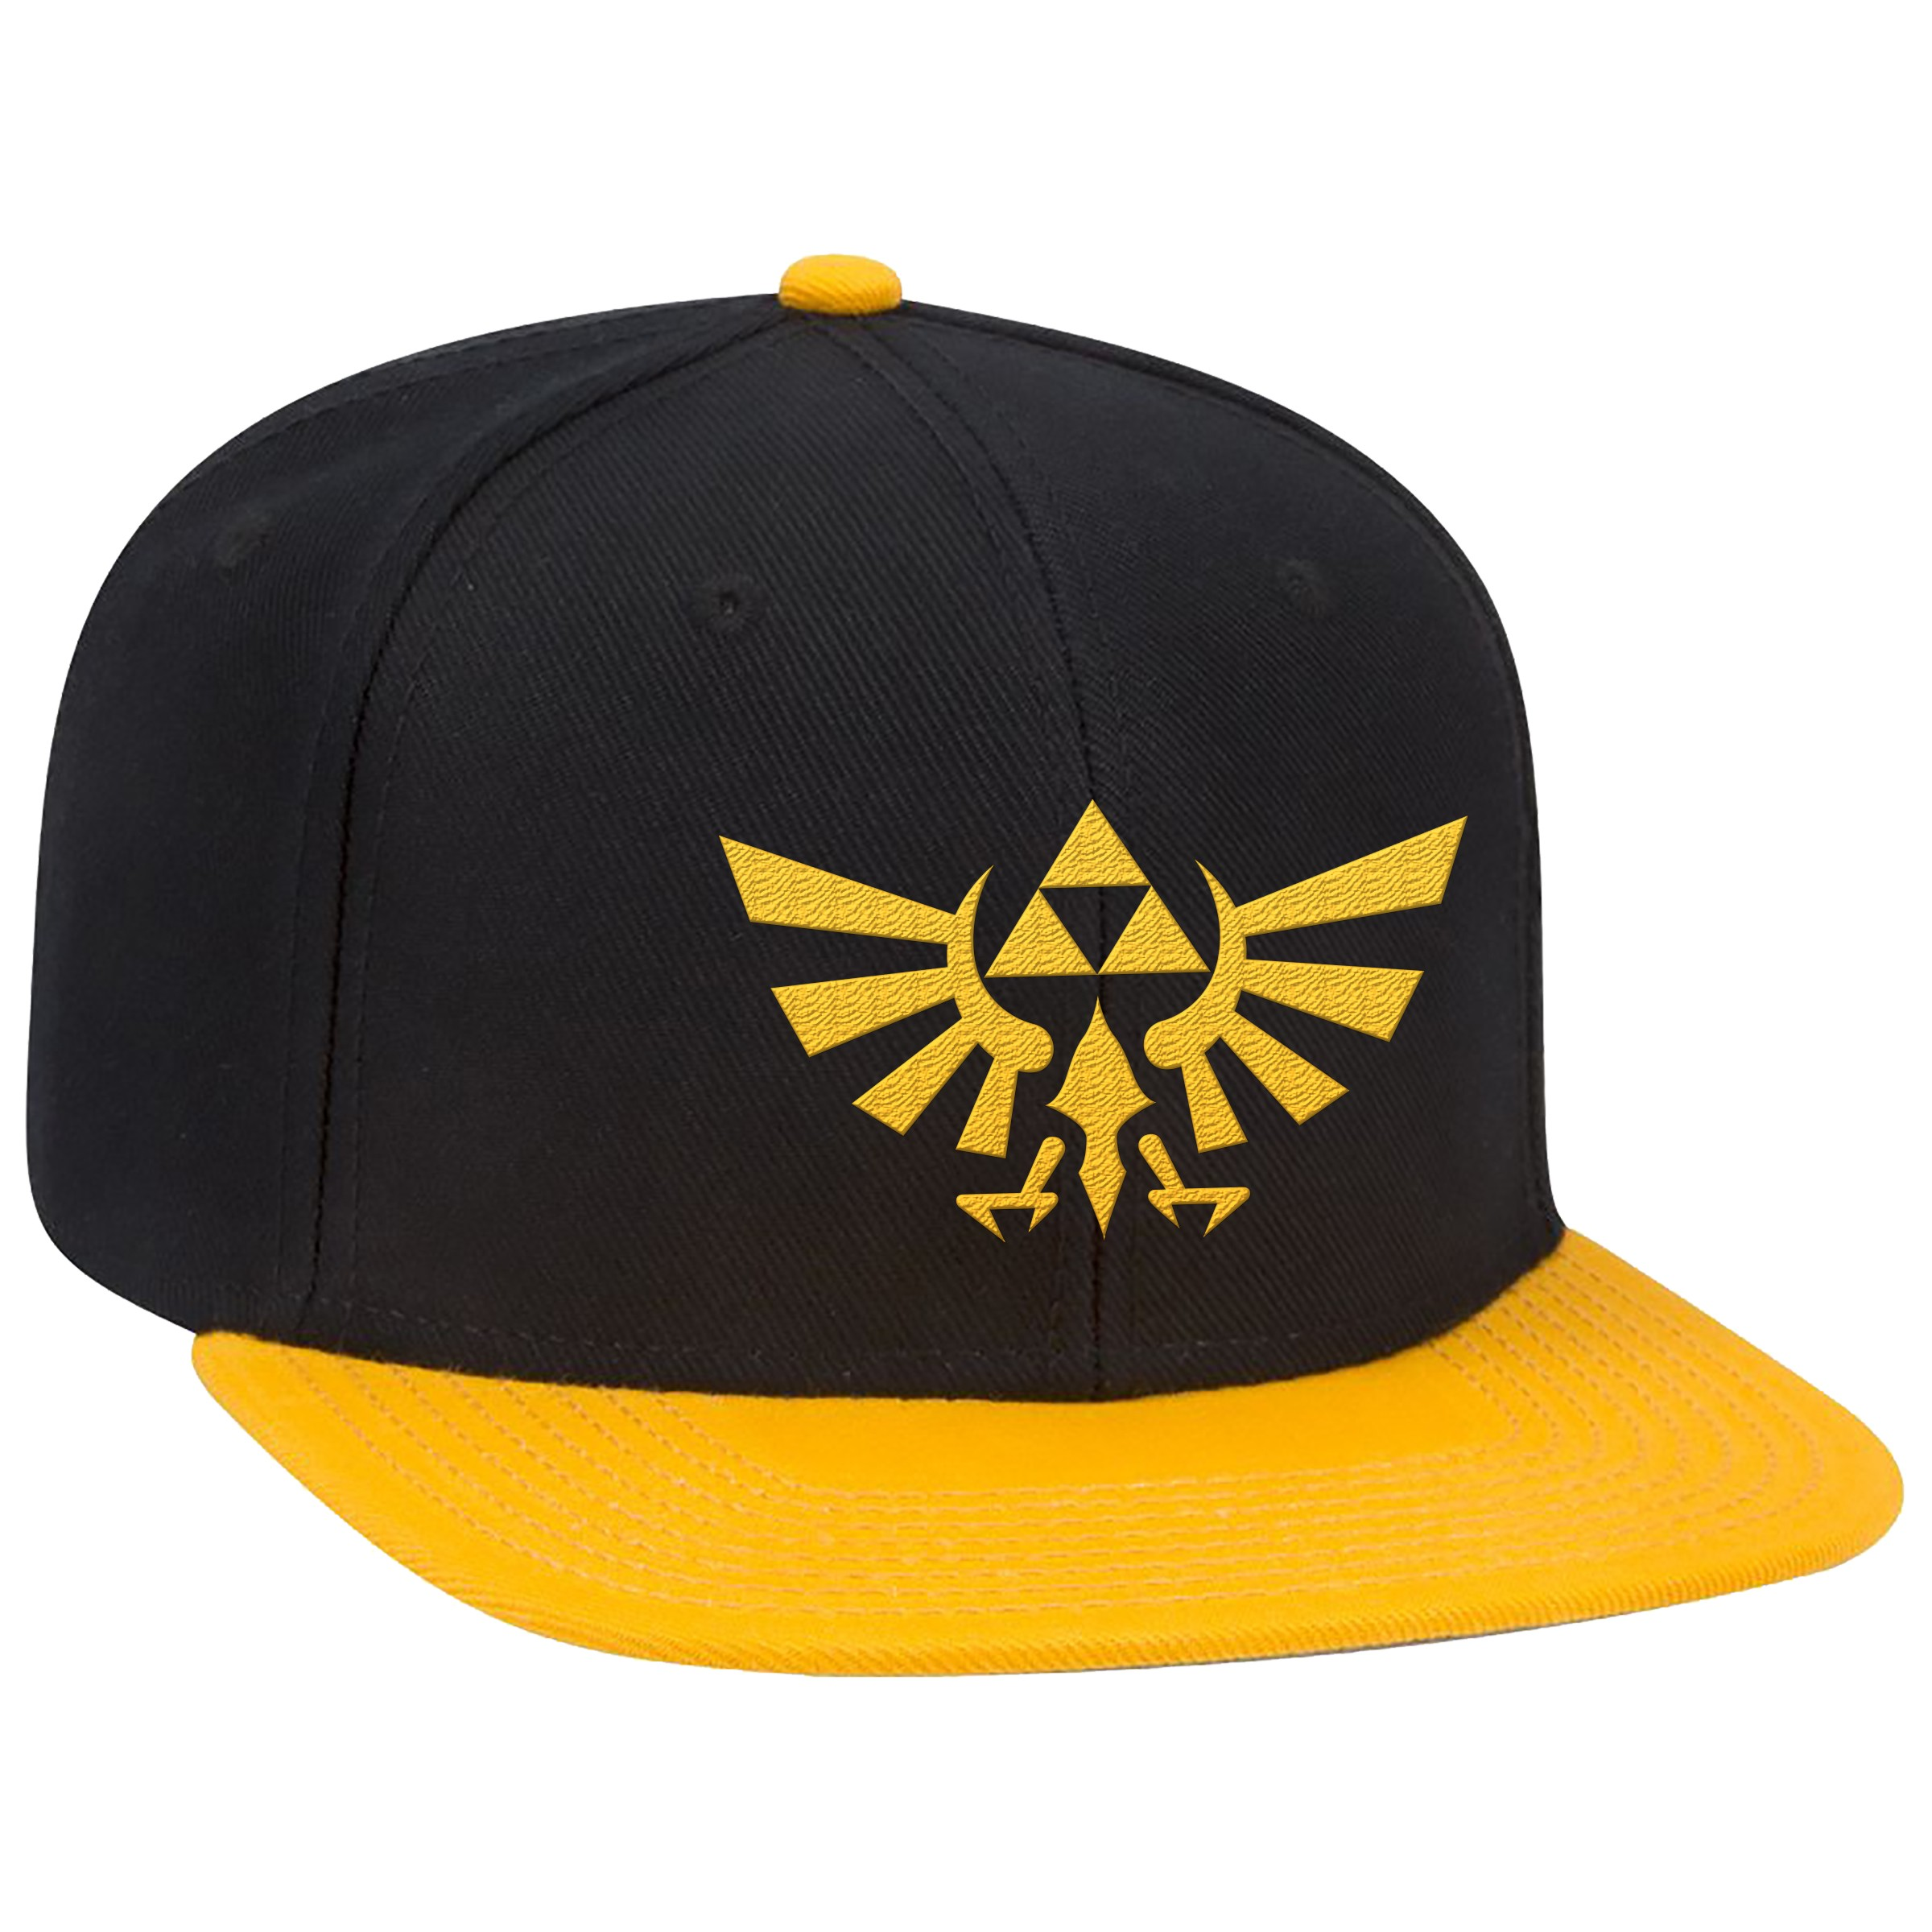 "The Legend of Zelda™ ""Yellow Hyrule Crest"" Flat Bill Hat - Officially Licensed by Nintendo"